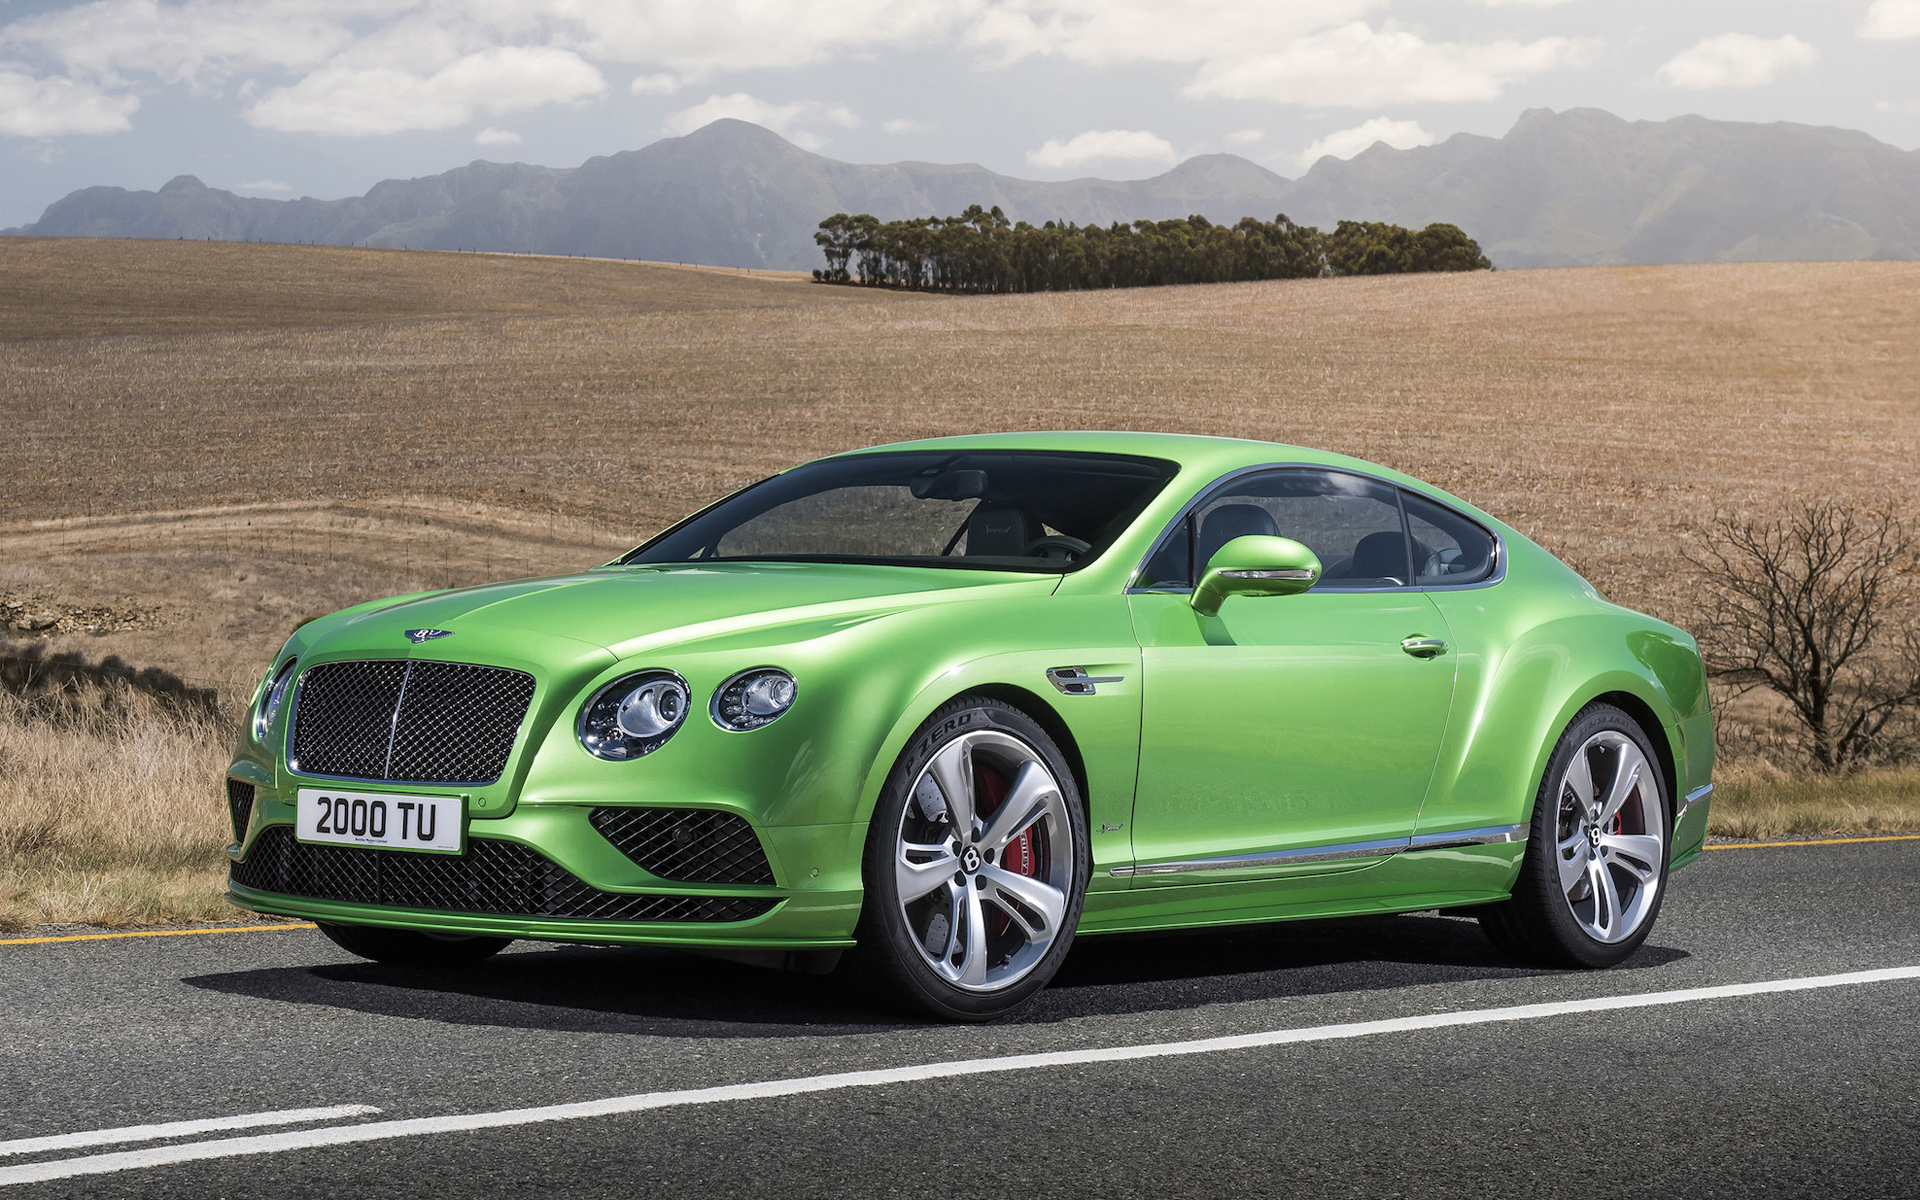 2016 Bentley Continental Gt4 Wallpaper Hd Car Wallpapers